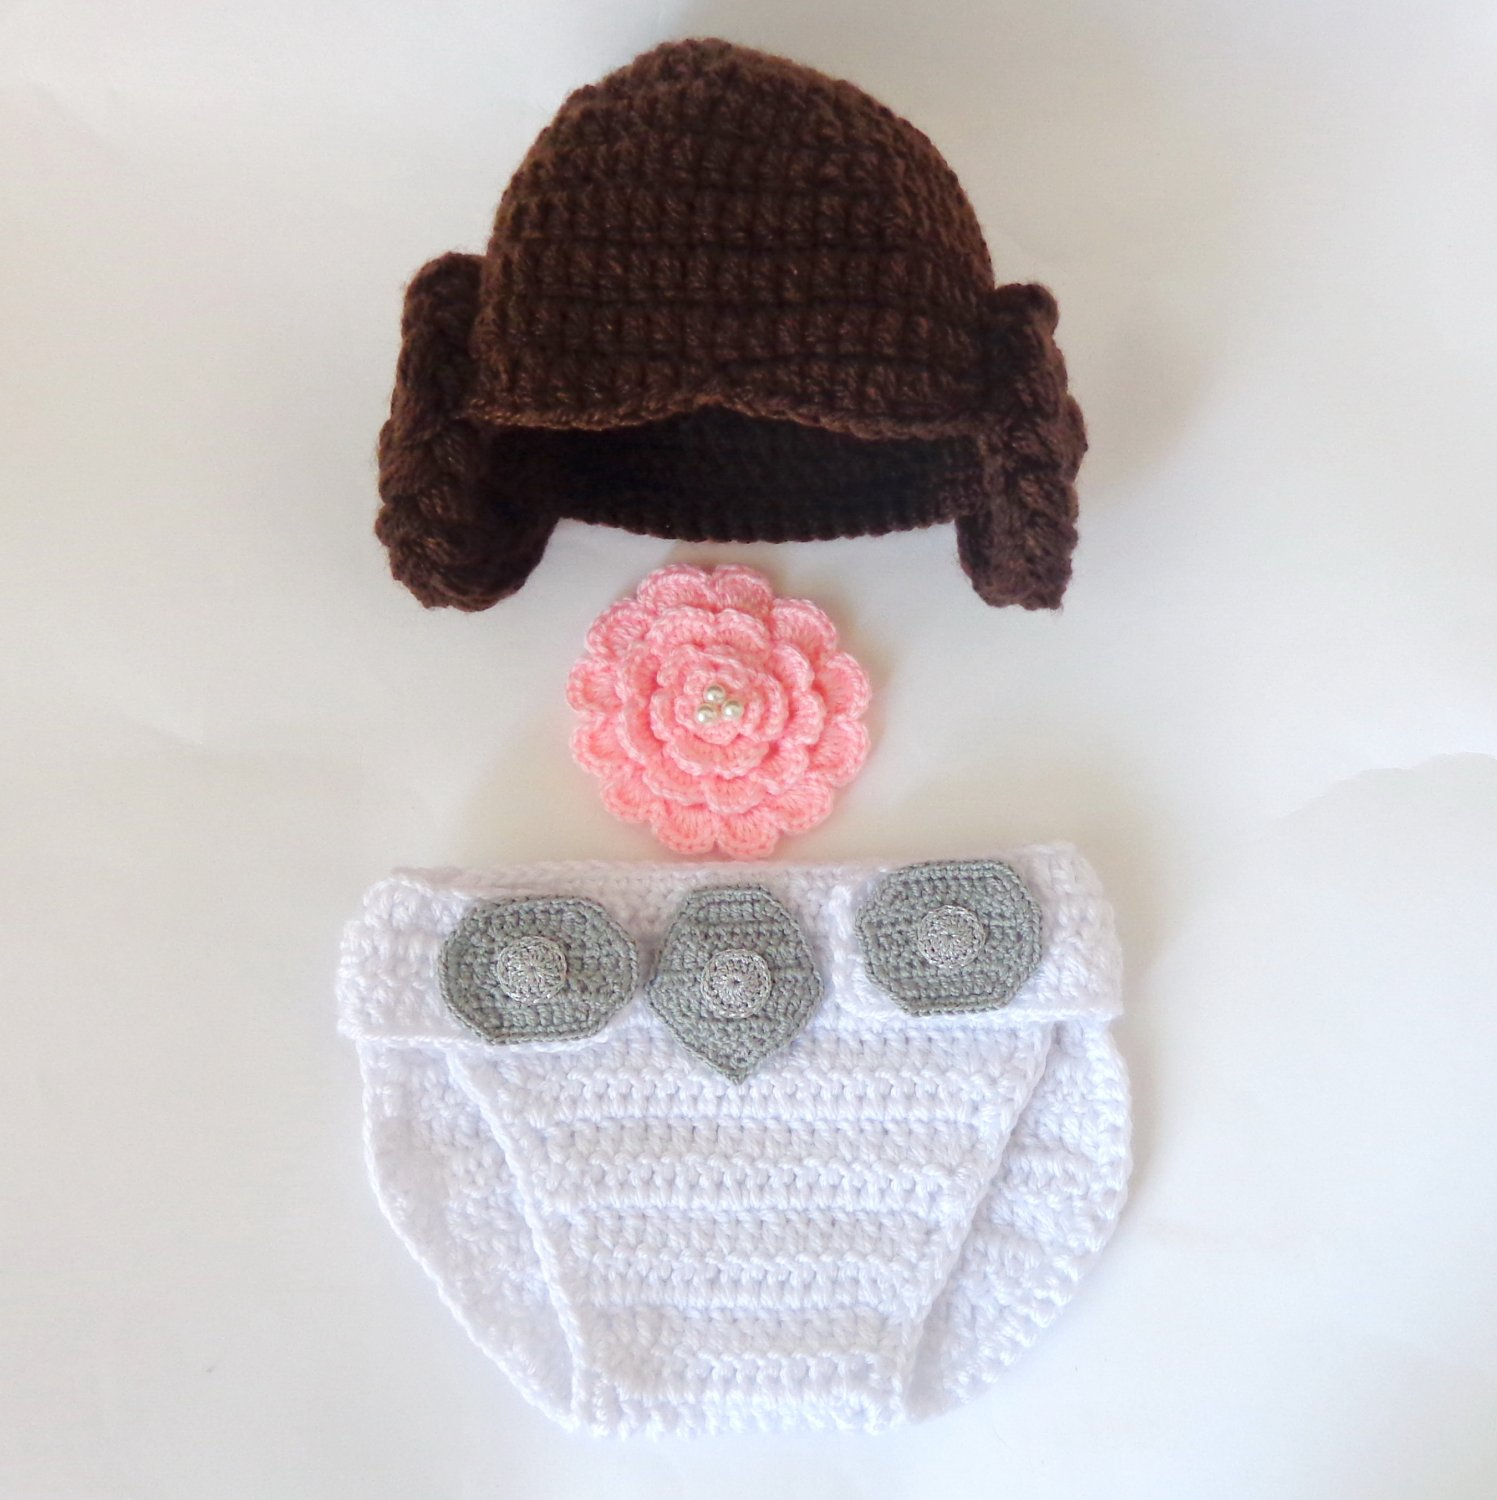 Princess Leia Baby Hat And Diaper Cover Set From Star Wars For Girl With Big Flower 6-12 months